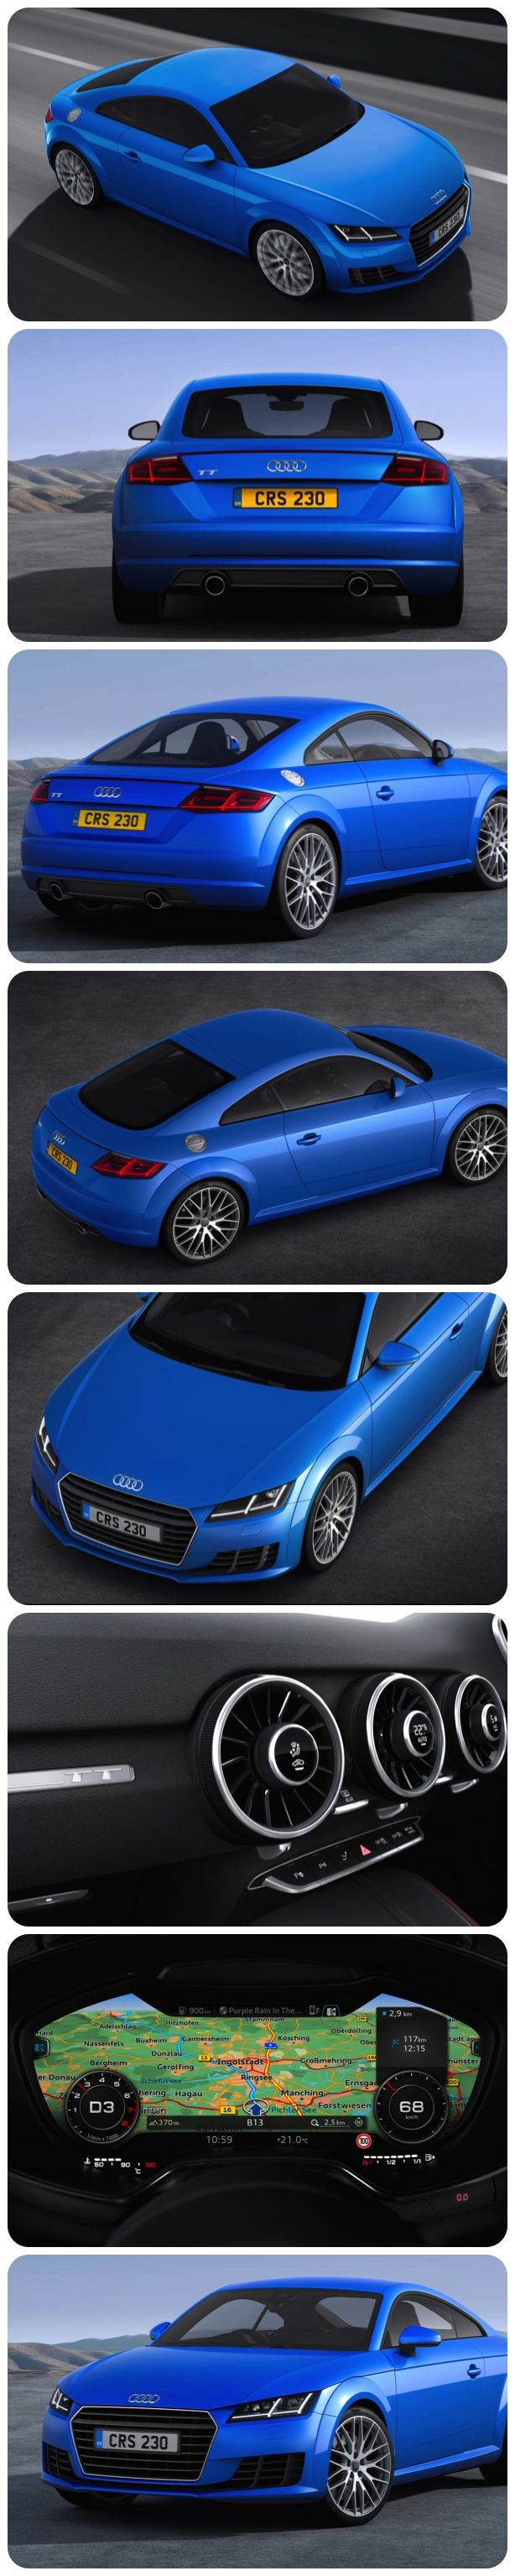 Trailblazing All-New Audi TT  - The exciting All-New Audi TT Coupé with a unique revolutionary all-digital virtual cockpit. Some of the highlight features of the All-New Audi TT Sport and S line models include  the fantastic fully digital Audi virtual cockpit, MMI touch, xenon or LED headlights, Audi Music Interface, Audi drive select, Alcantara/leather sports seats, keyless go.  The new models are now available to order priced from £29,770 – £35,335 OTR. #audi #tt #newcars #coupe #cool